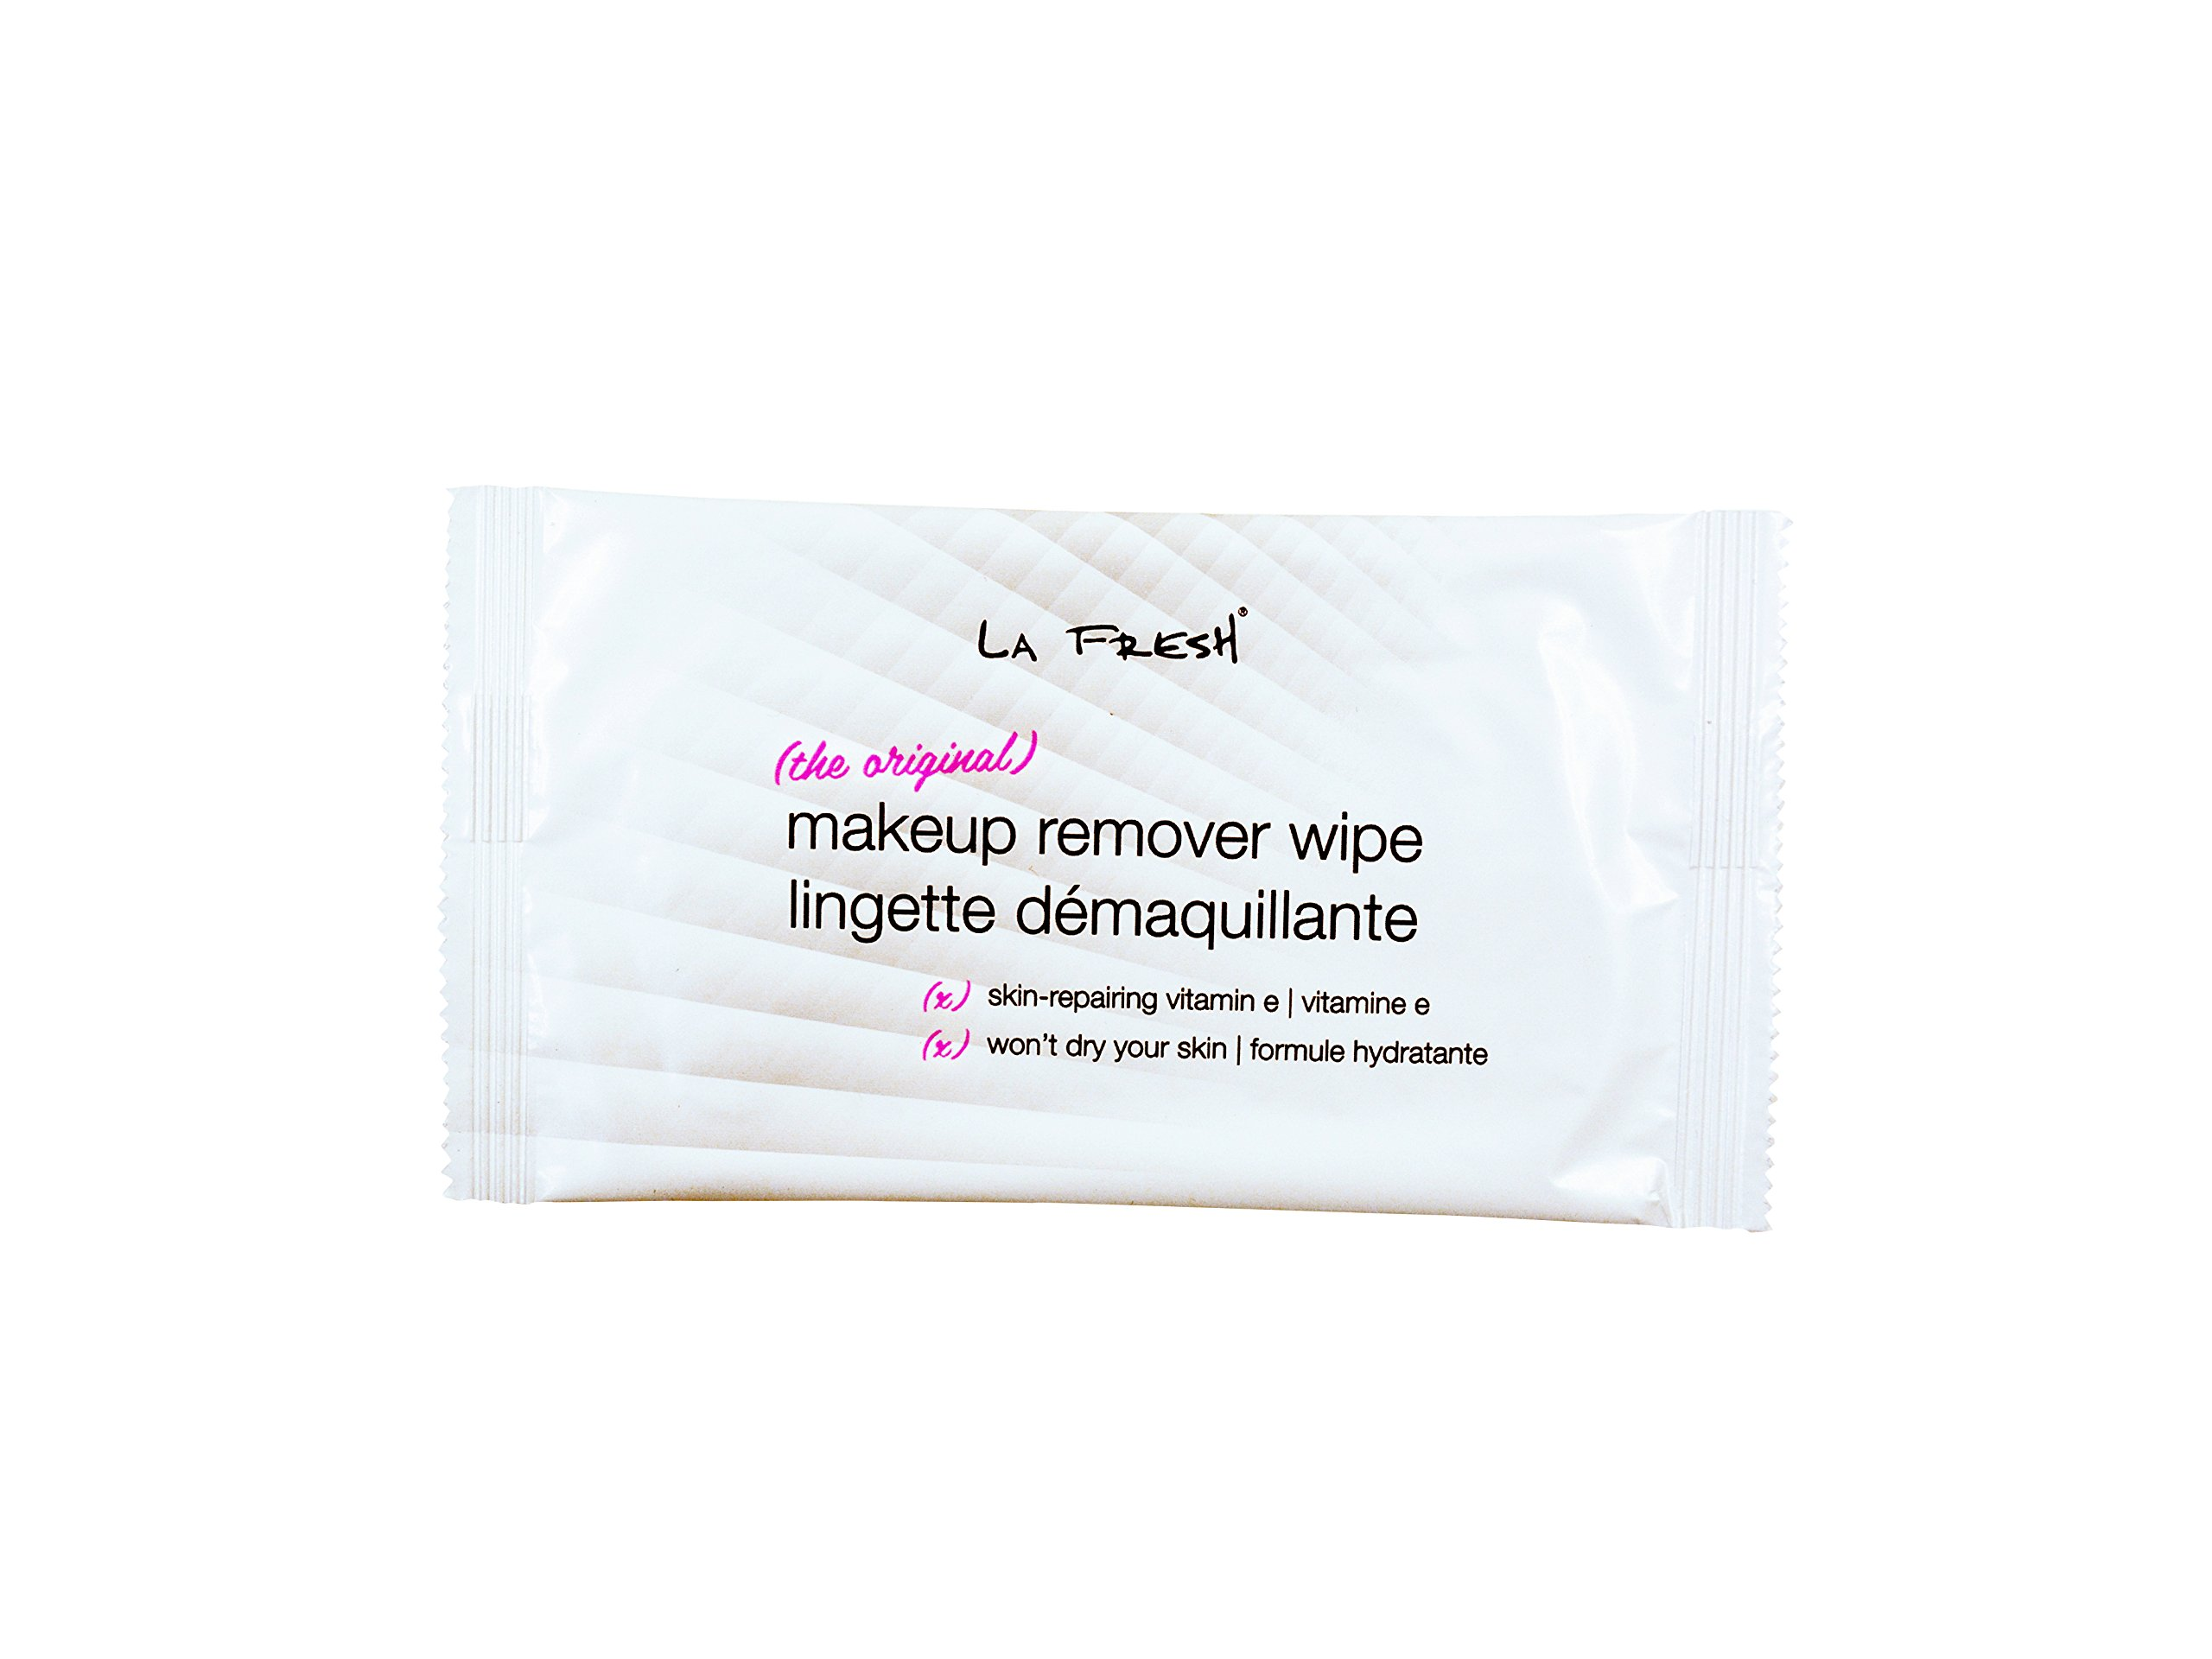 La Fresh Travel Lite Makeup Remover Cleansing Face Wipes - Facial Towelettes with Vitamin E for Waterproof Makeup - Individually Sealed Wrappers (Large 8 in x 7 in Cloth Size) - 1200 Count by La Fresh